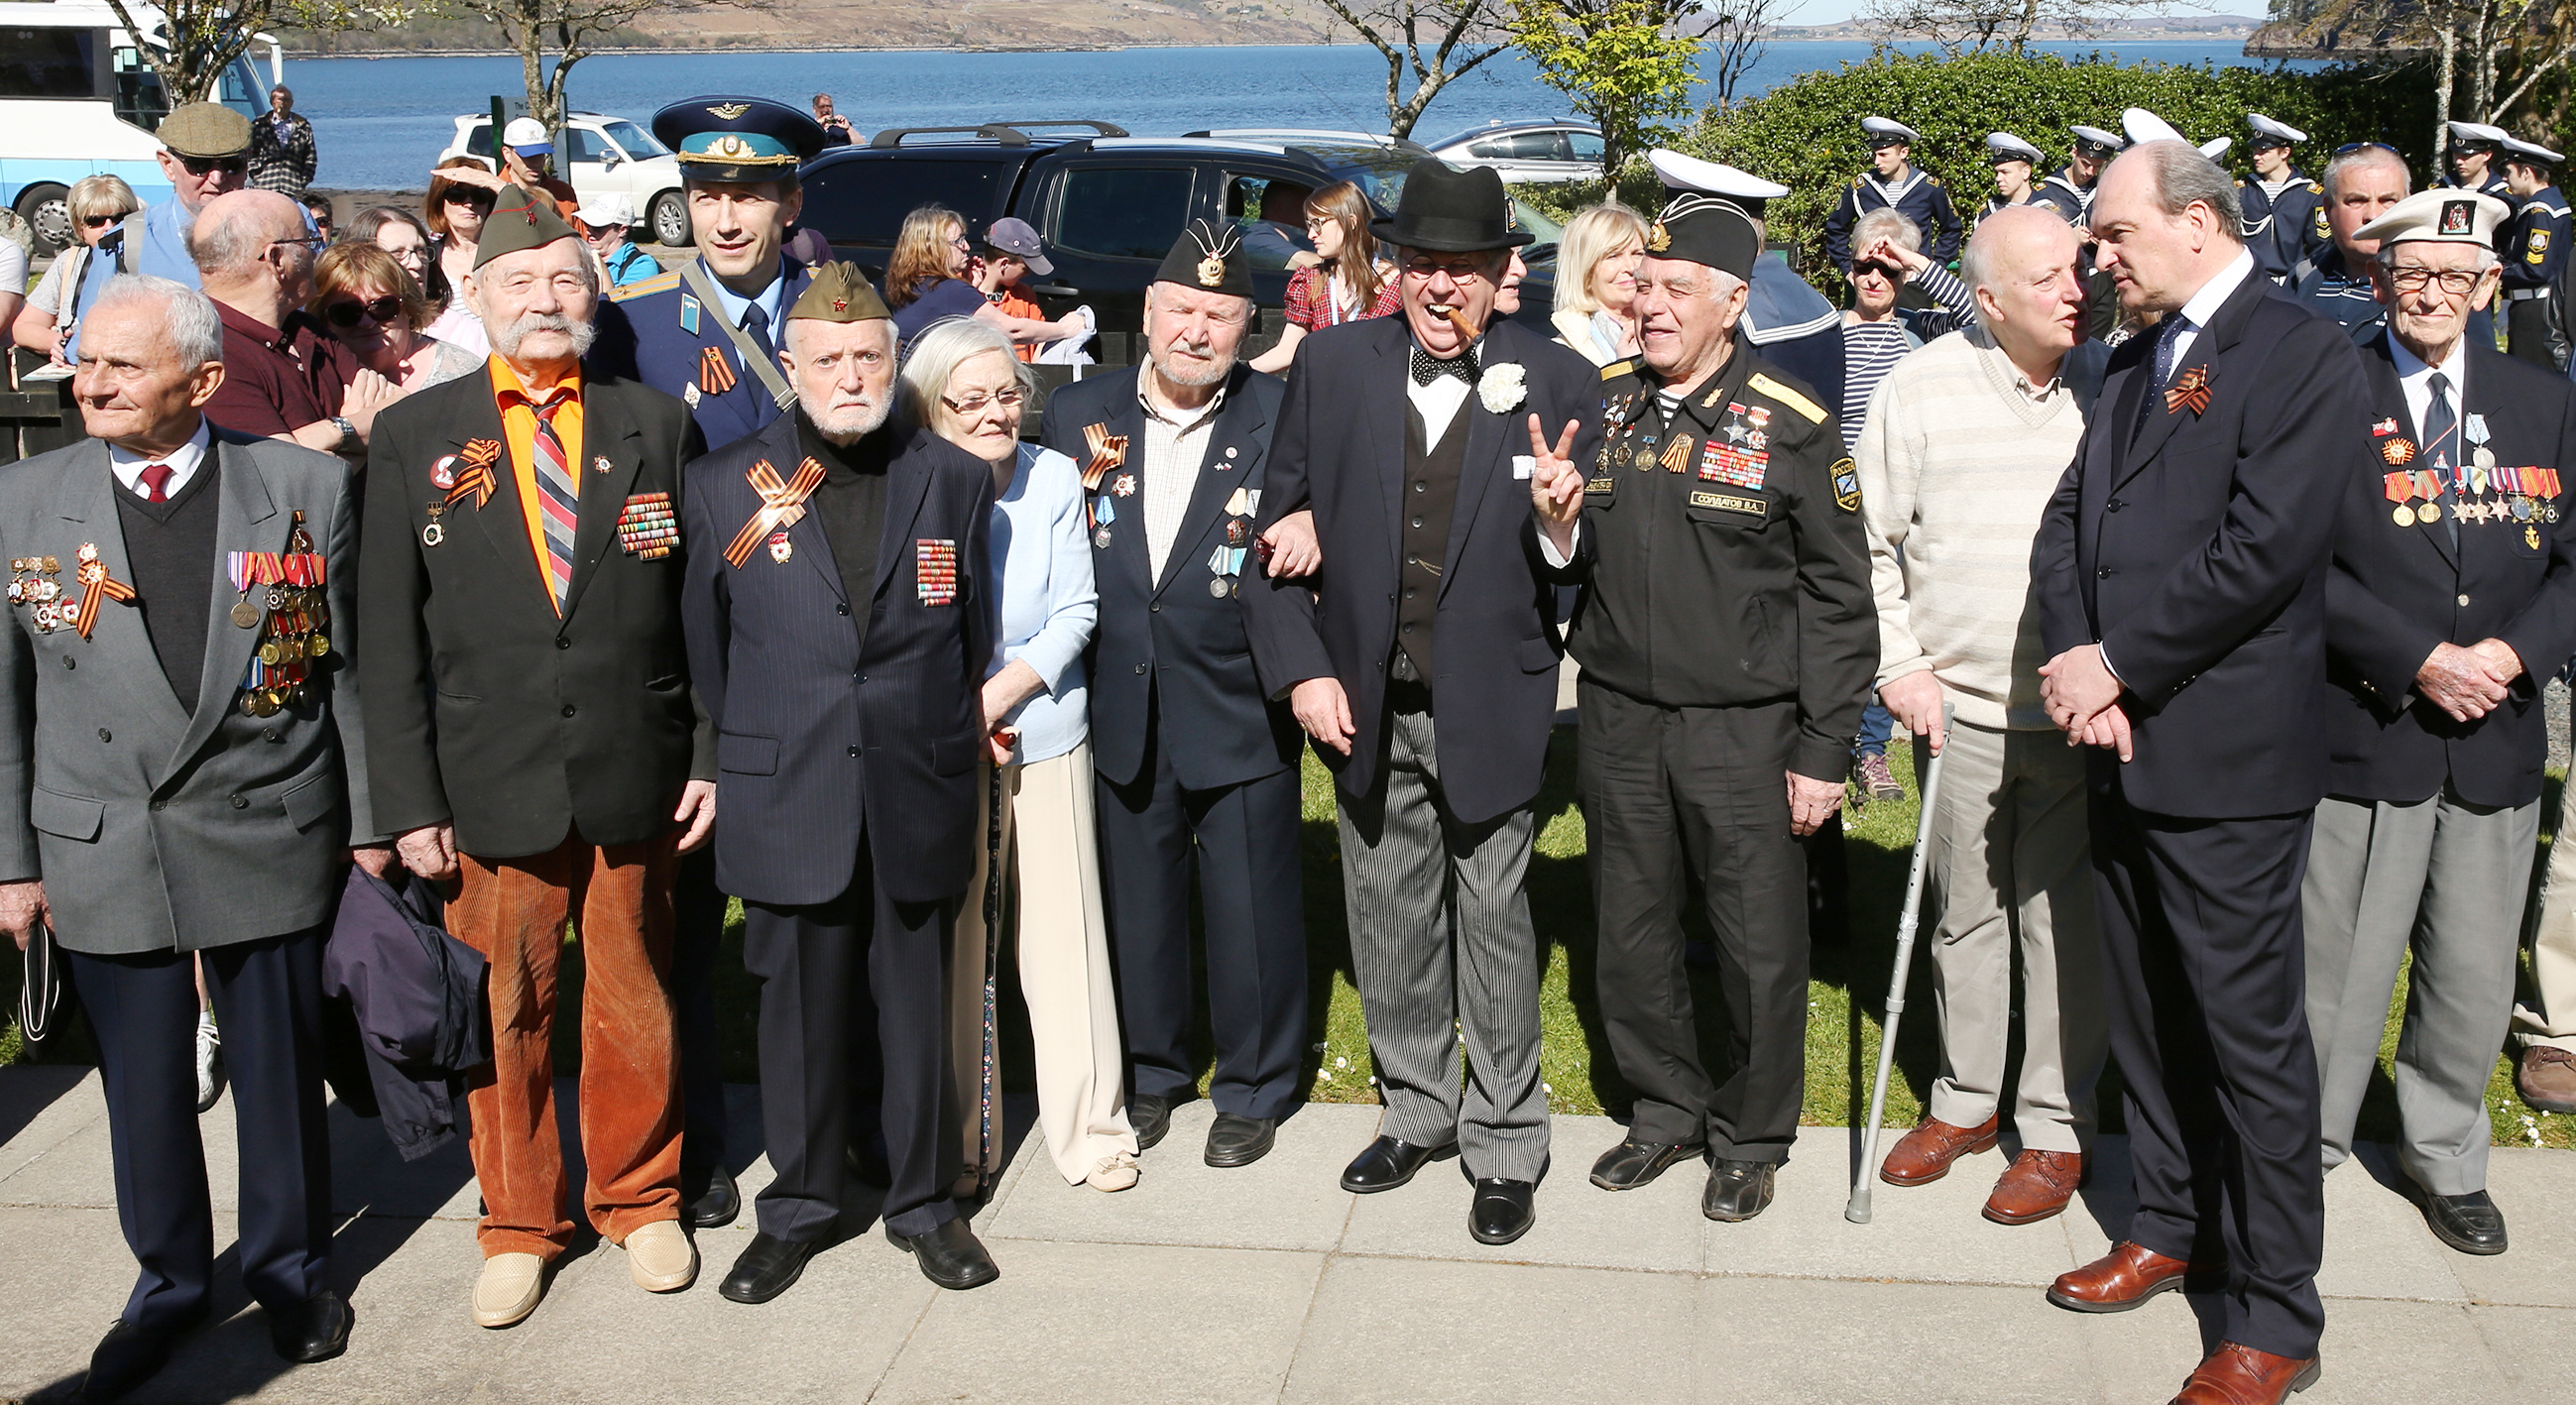 Some of the Arctic Convoy veterans from Russia and the UK, line up for the camera with Russian consul general Andrey Pritsepokev and 'Winston Churchill' Richard Gumm.